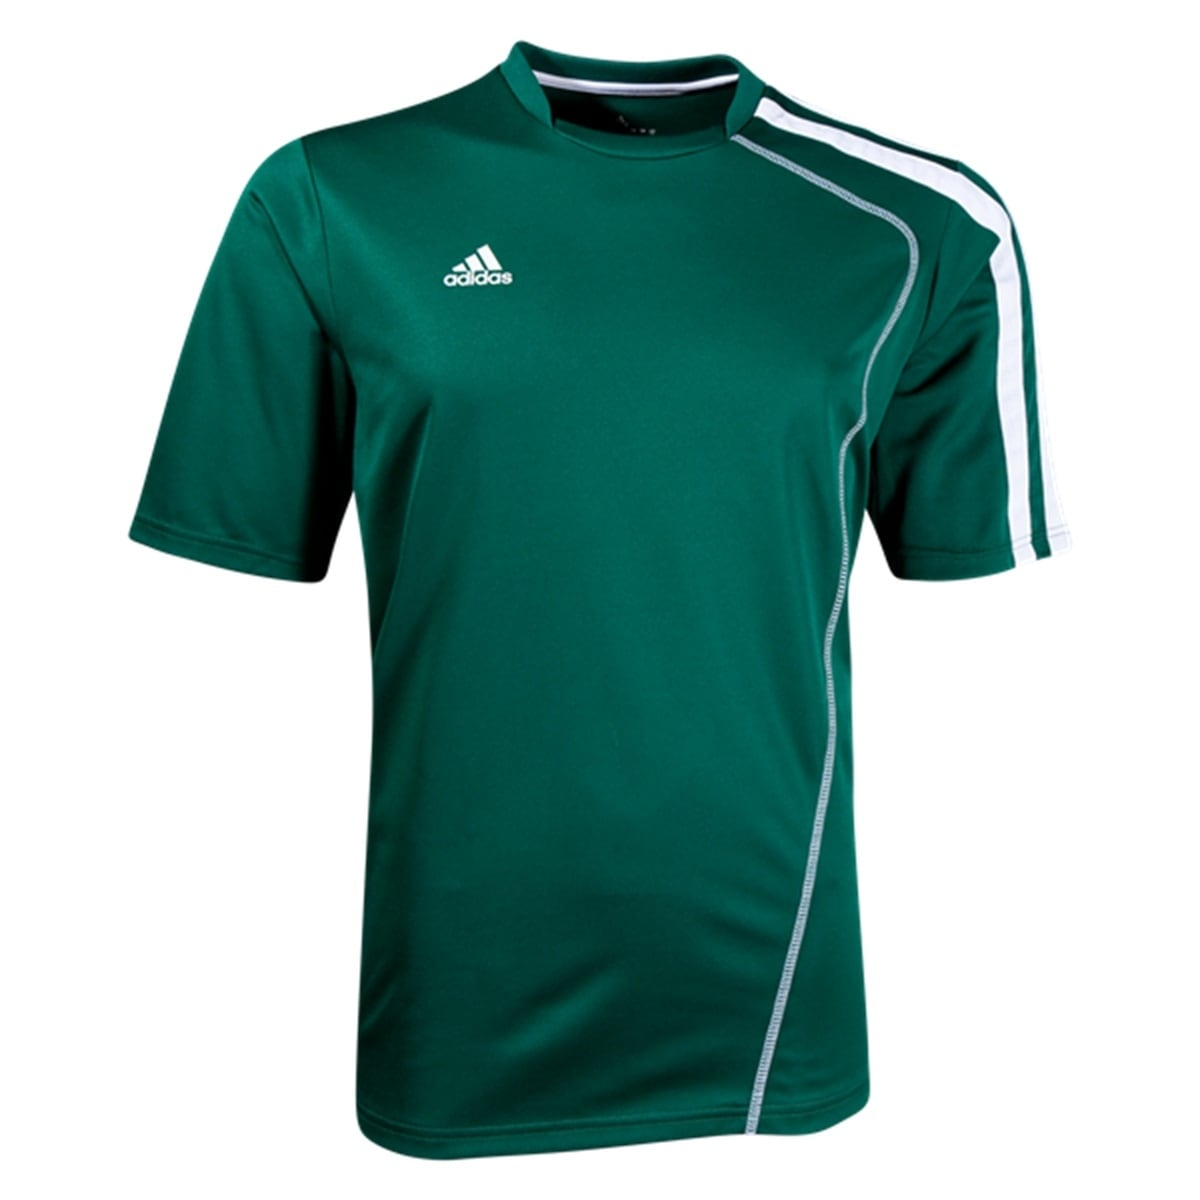 hot sale online cabd9 62324 Adidas Boys Sossto Soccer Jersey T-Shirt Forest White Size Youth - Green